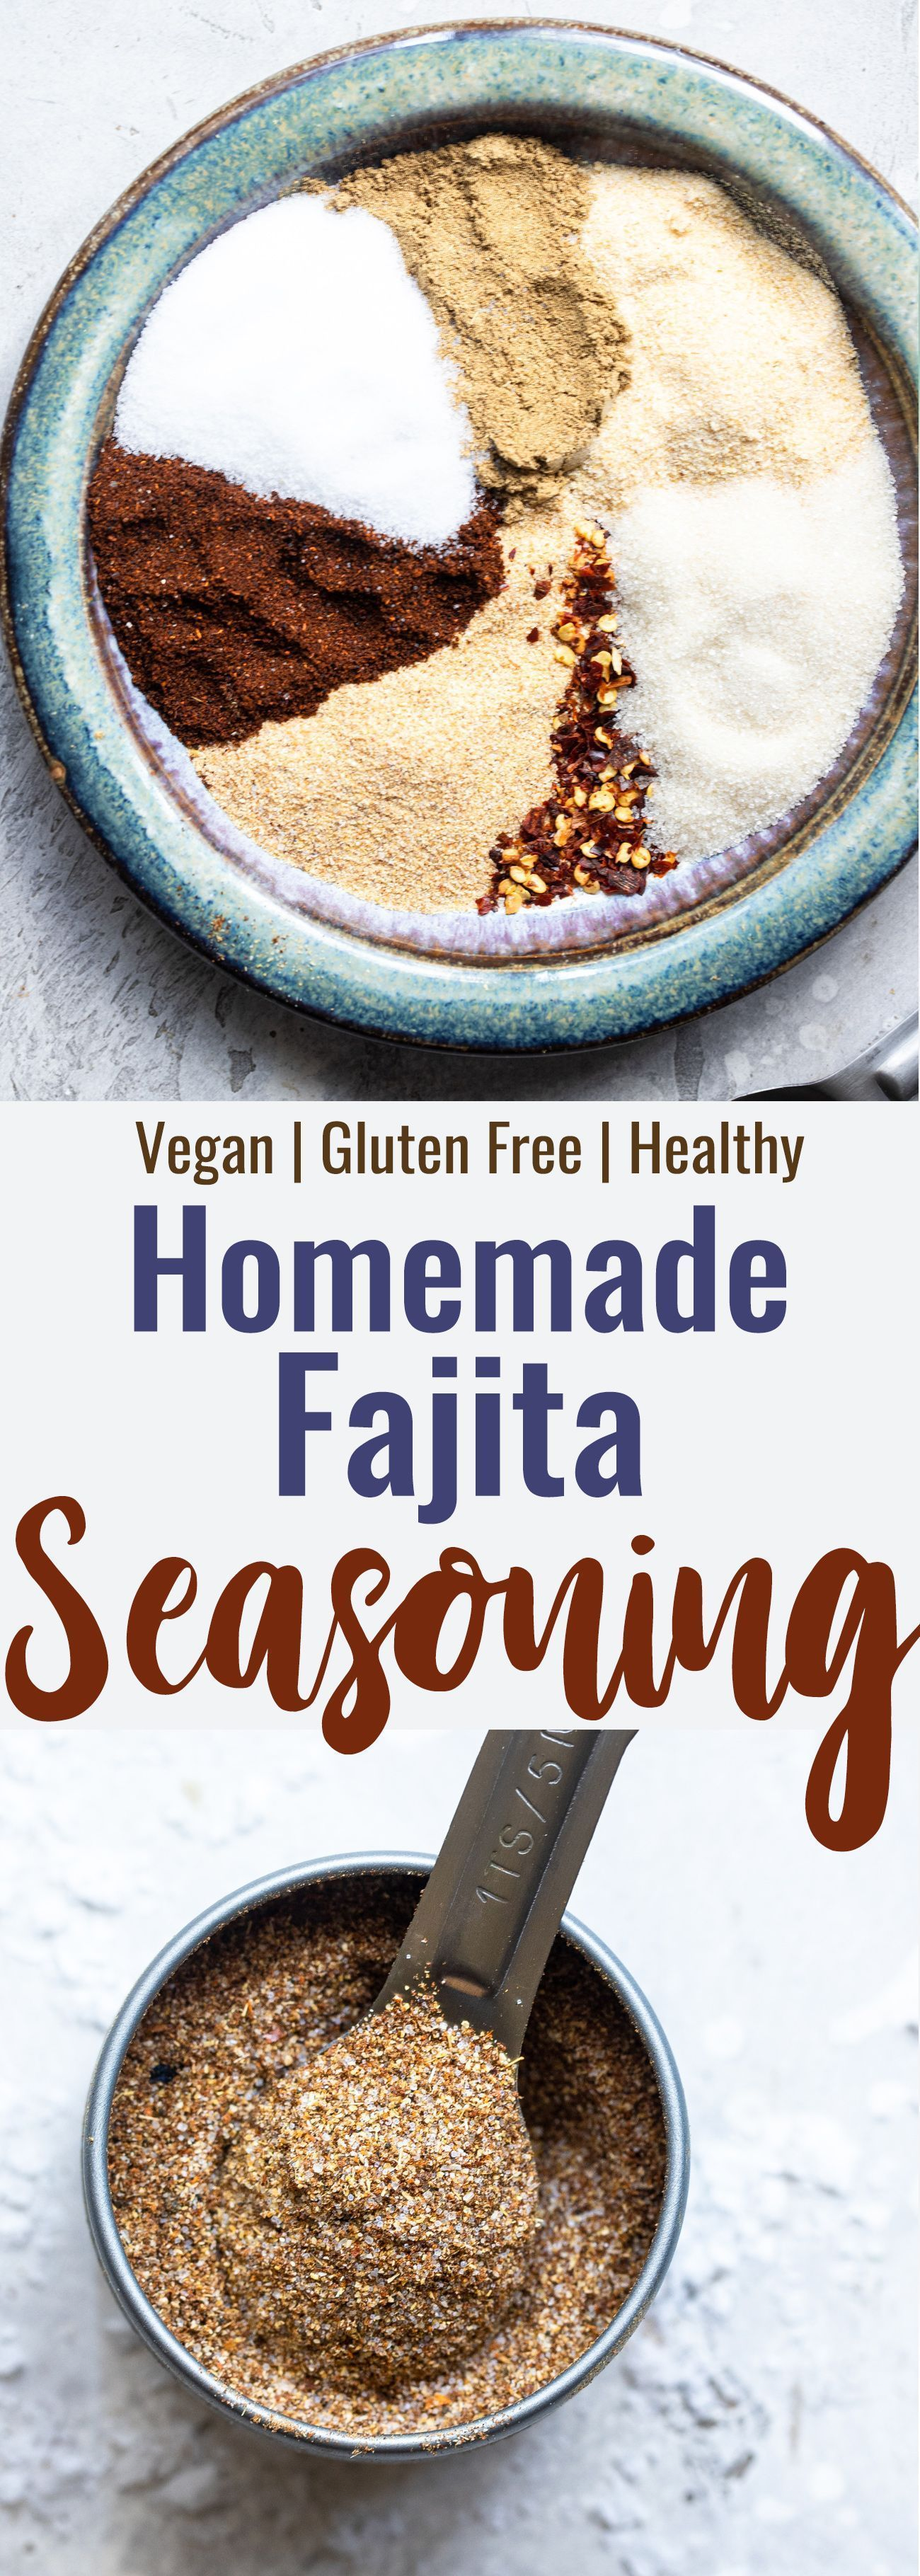 Easy Homemade Fajita Seasoning Recipe - This will be your new go-to! Made with simple ingredients, gluten free, vegan and better and healthier than store bought! | #Foodfaithfitness | #Vegan #glutenfree #healthy #dairyfree #mexican #homemadefajitaseasoning Easy Homemade Fajita Seasoning Recipe - This will be your new go-to! Made with simple ingredients, gluten free, vegan and better and healthier than store bought! | #Foodfaithfitness | #Vegan #glutenfree #healthy #dairyfree #mexican #homemadefa #homemadefajitaseasoning